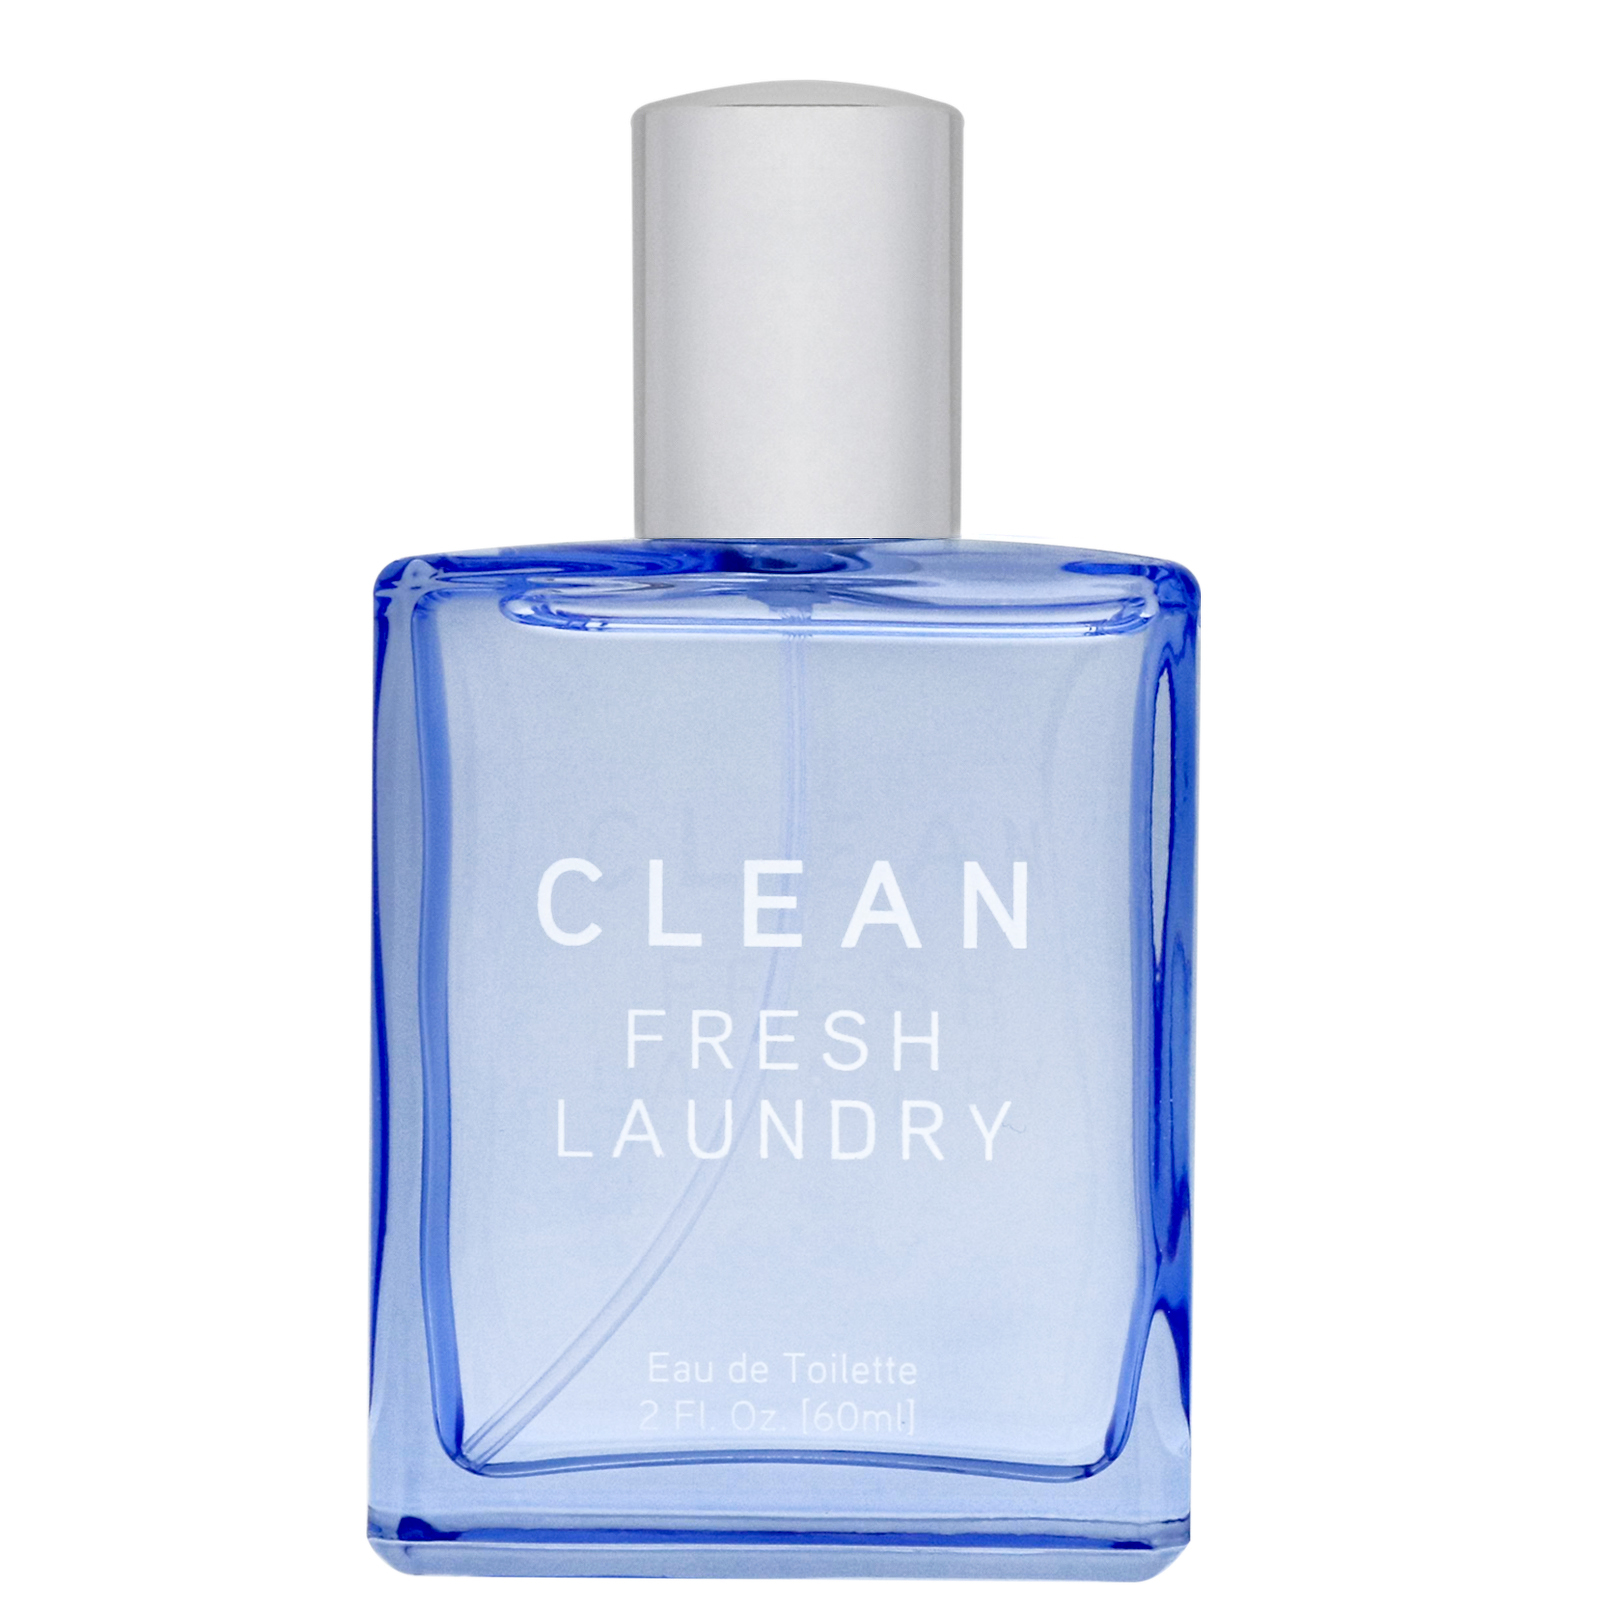 CLEAN Fresh Laundry Eau de Toilette Spray 60ml